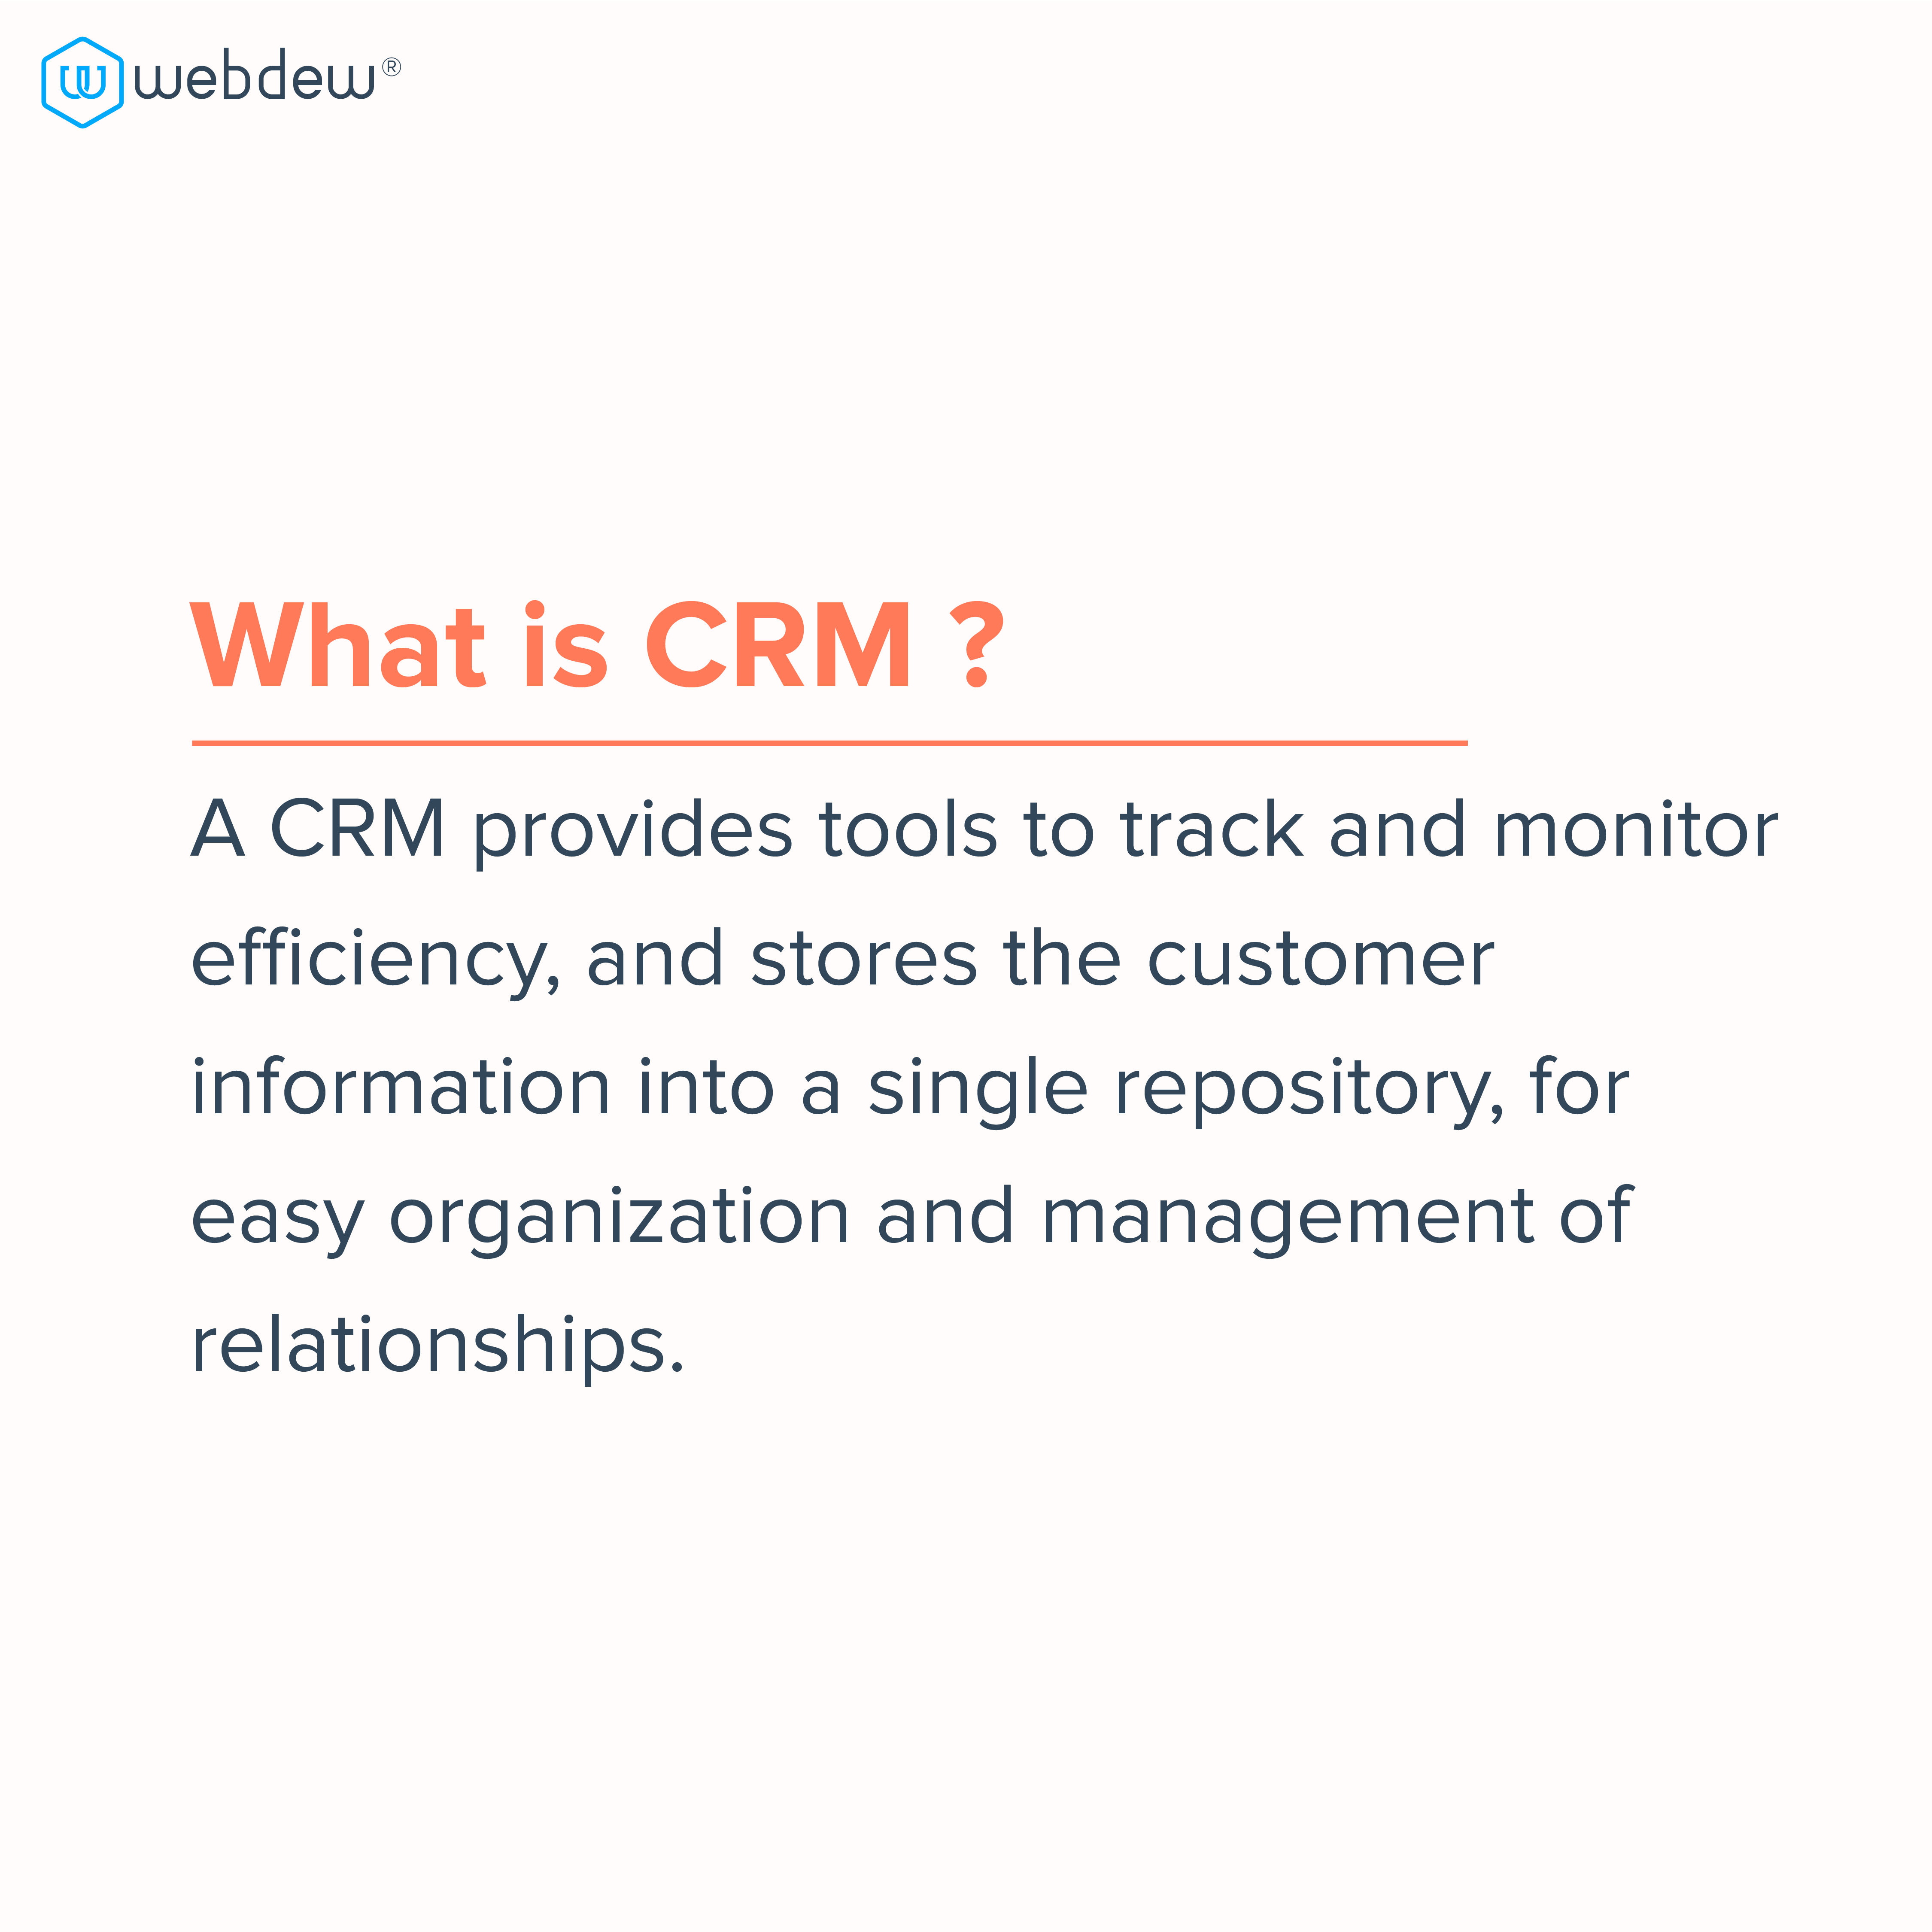 2. what is CRM